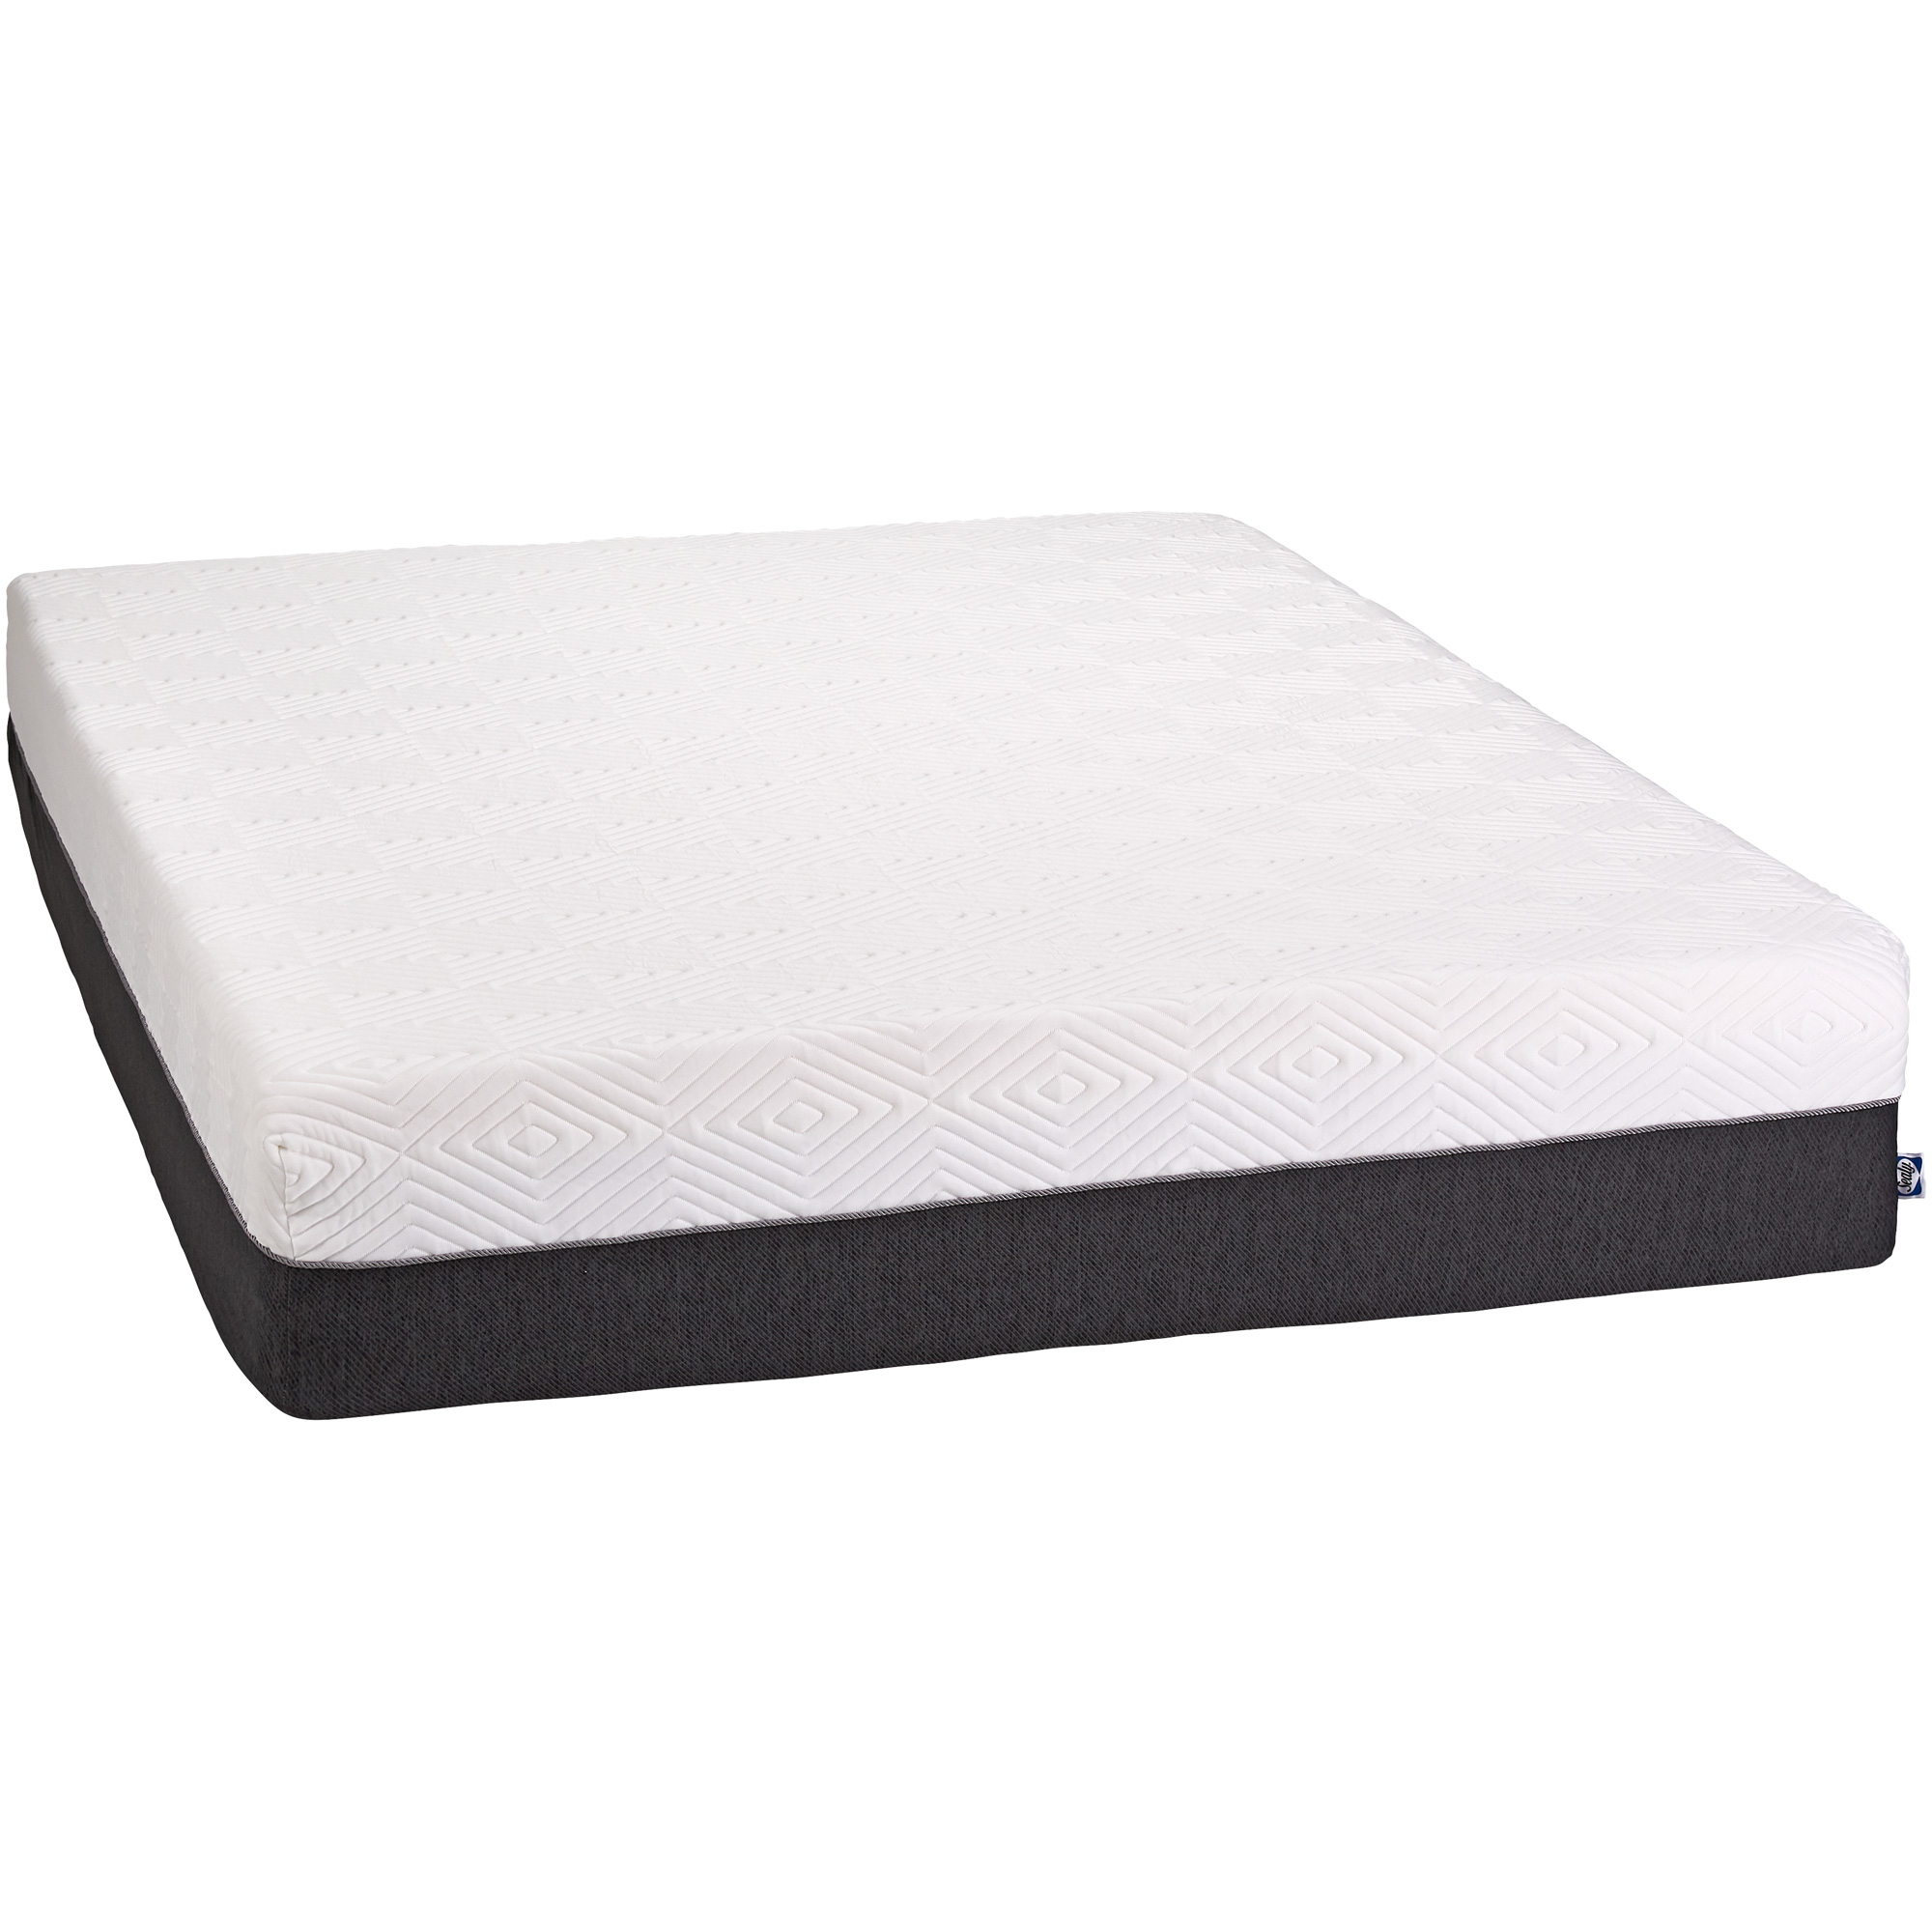 """Slumbercrest 12"""" Hybrid Full Mattress in a Box"""